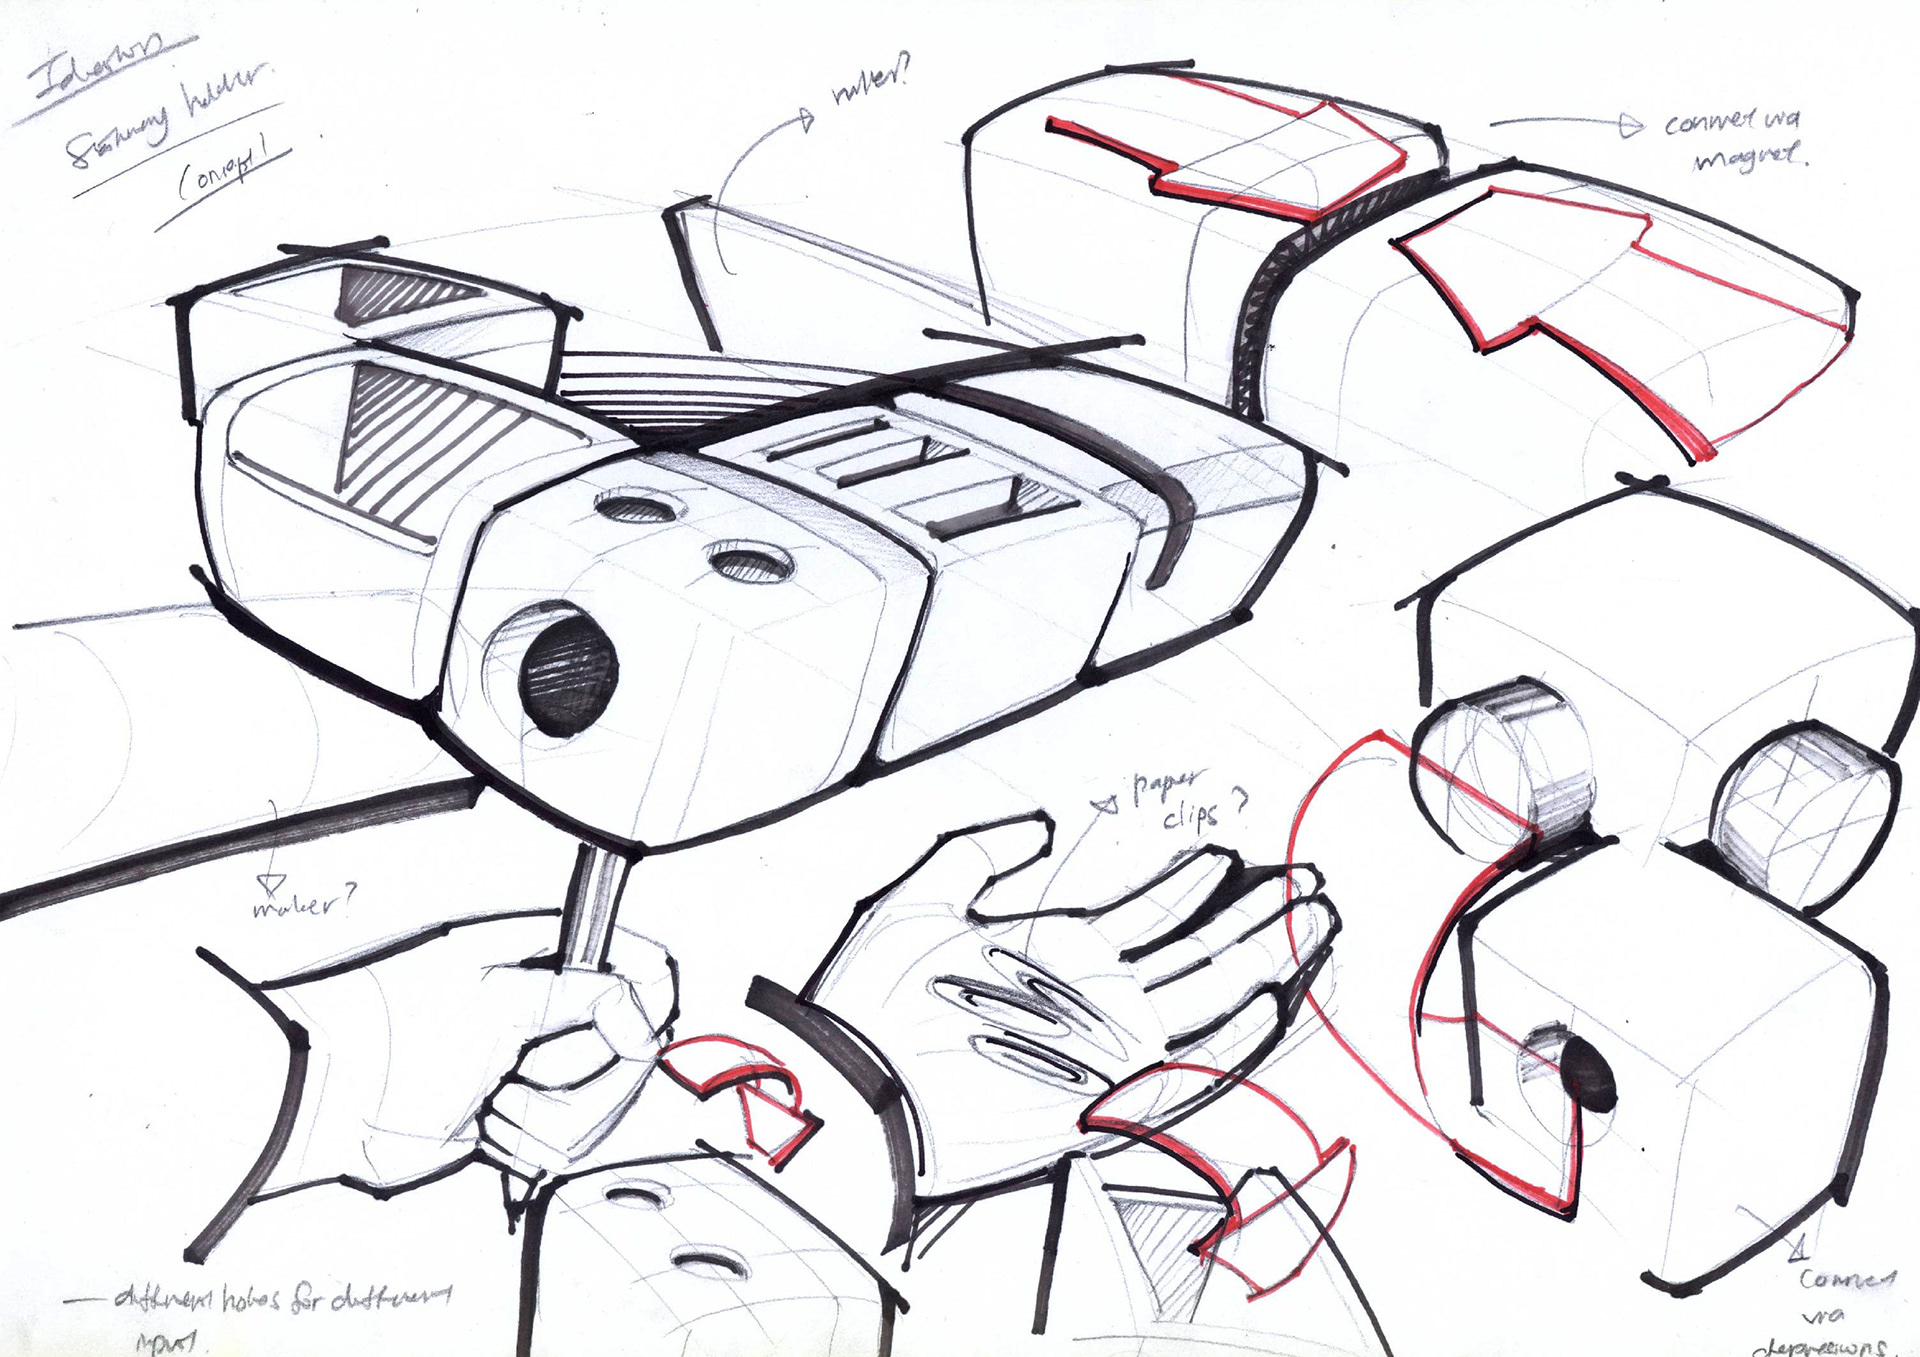 ProductPresentationBoardsexploded Sketch Exploded view